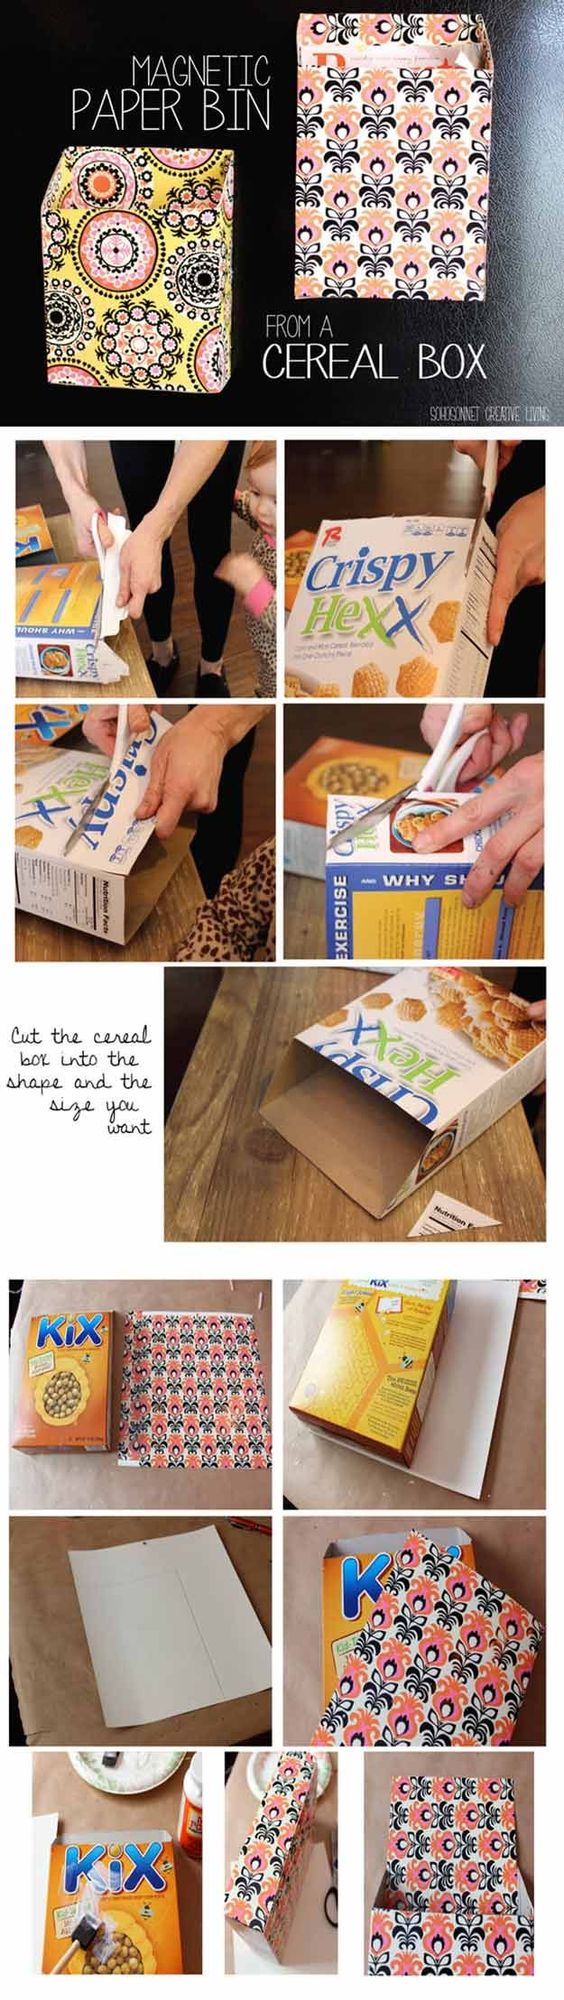 Magnetic cereal box bins